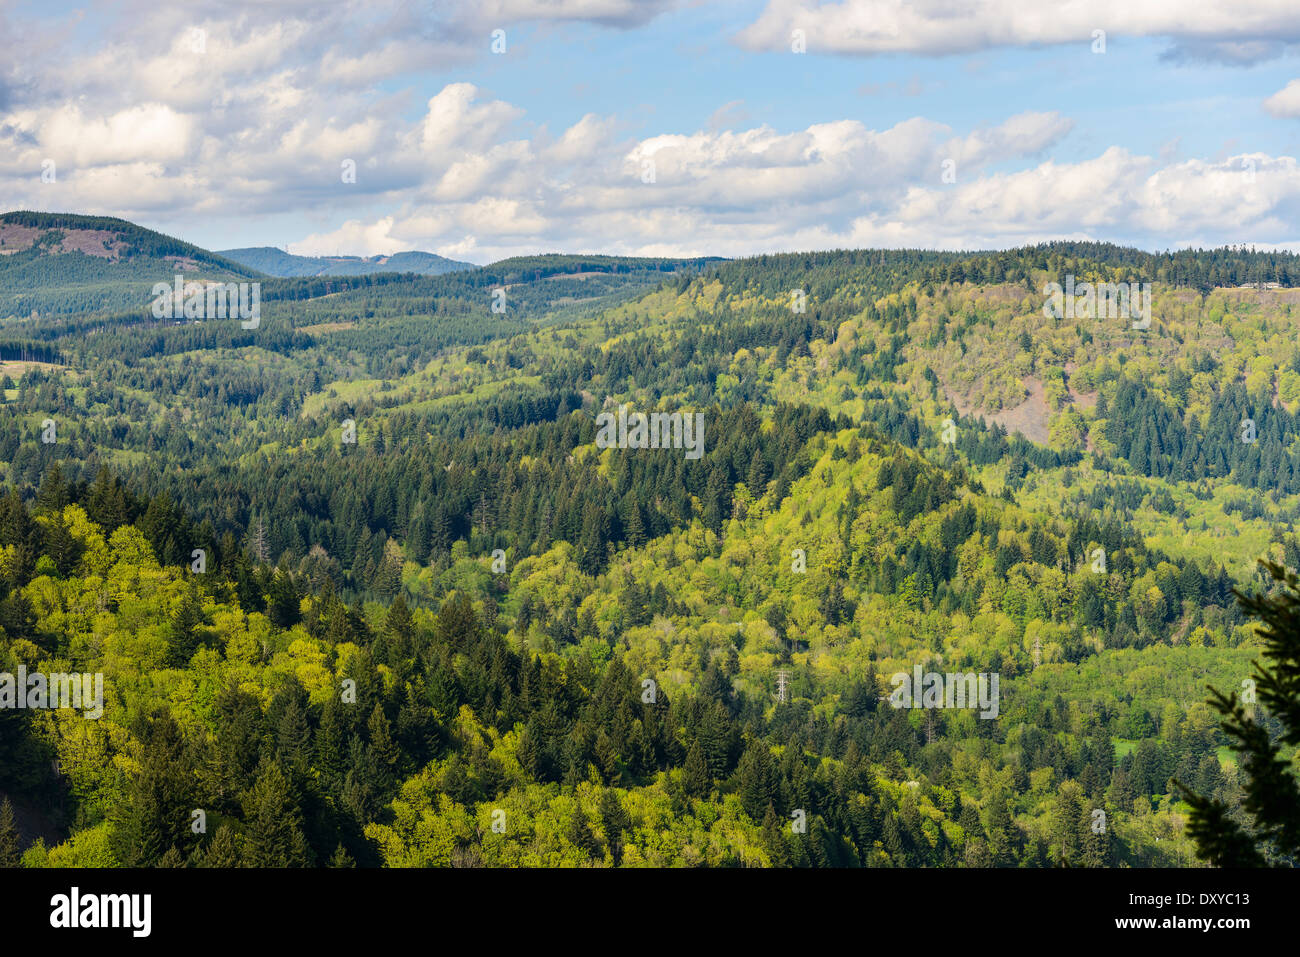 View from Nancy Russell Memorial Lookout at the rim of Cape Horn. - Stock Image